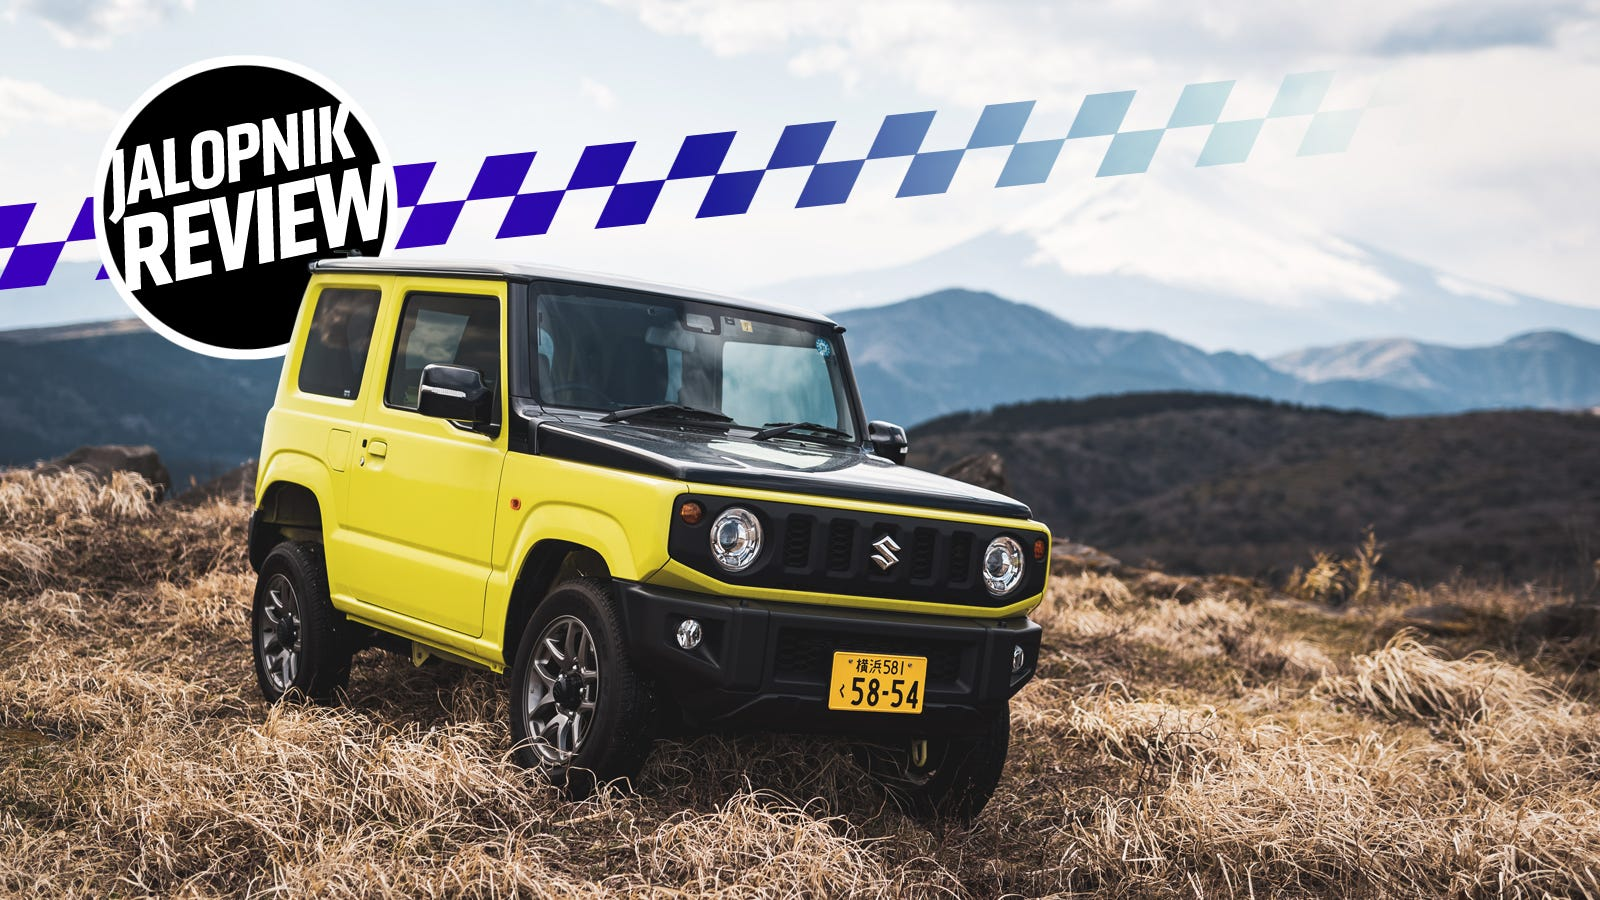 The 660cc 2019 Suzuki Jimny Isn't Perfect but It's Full of Charm